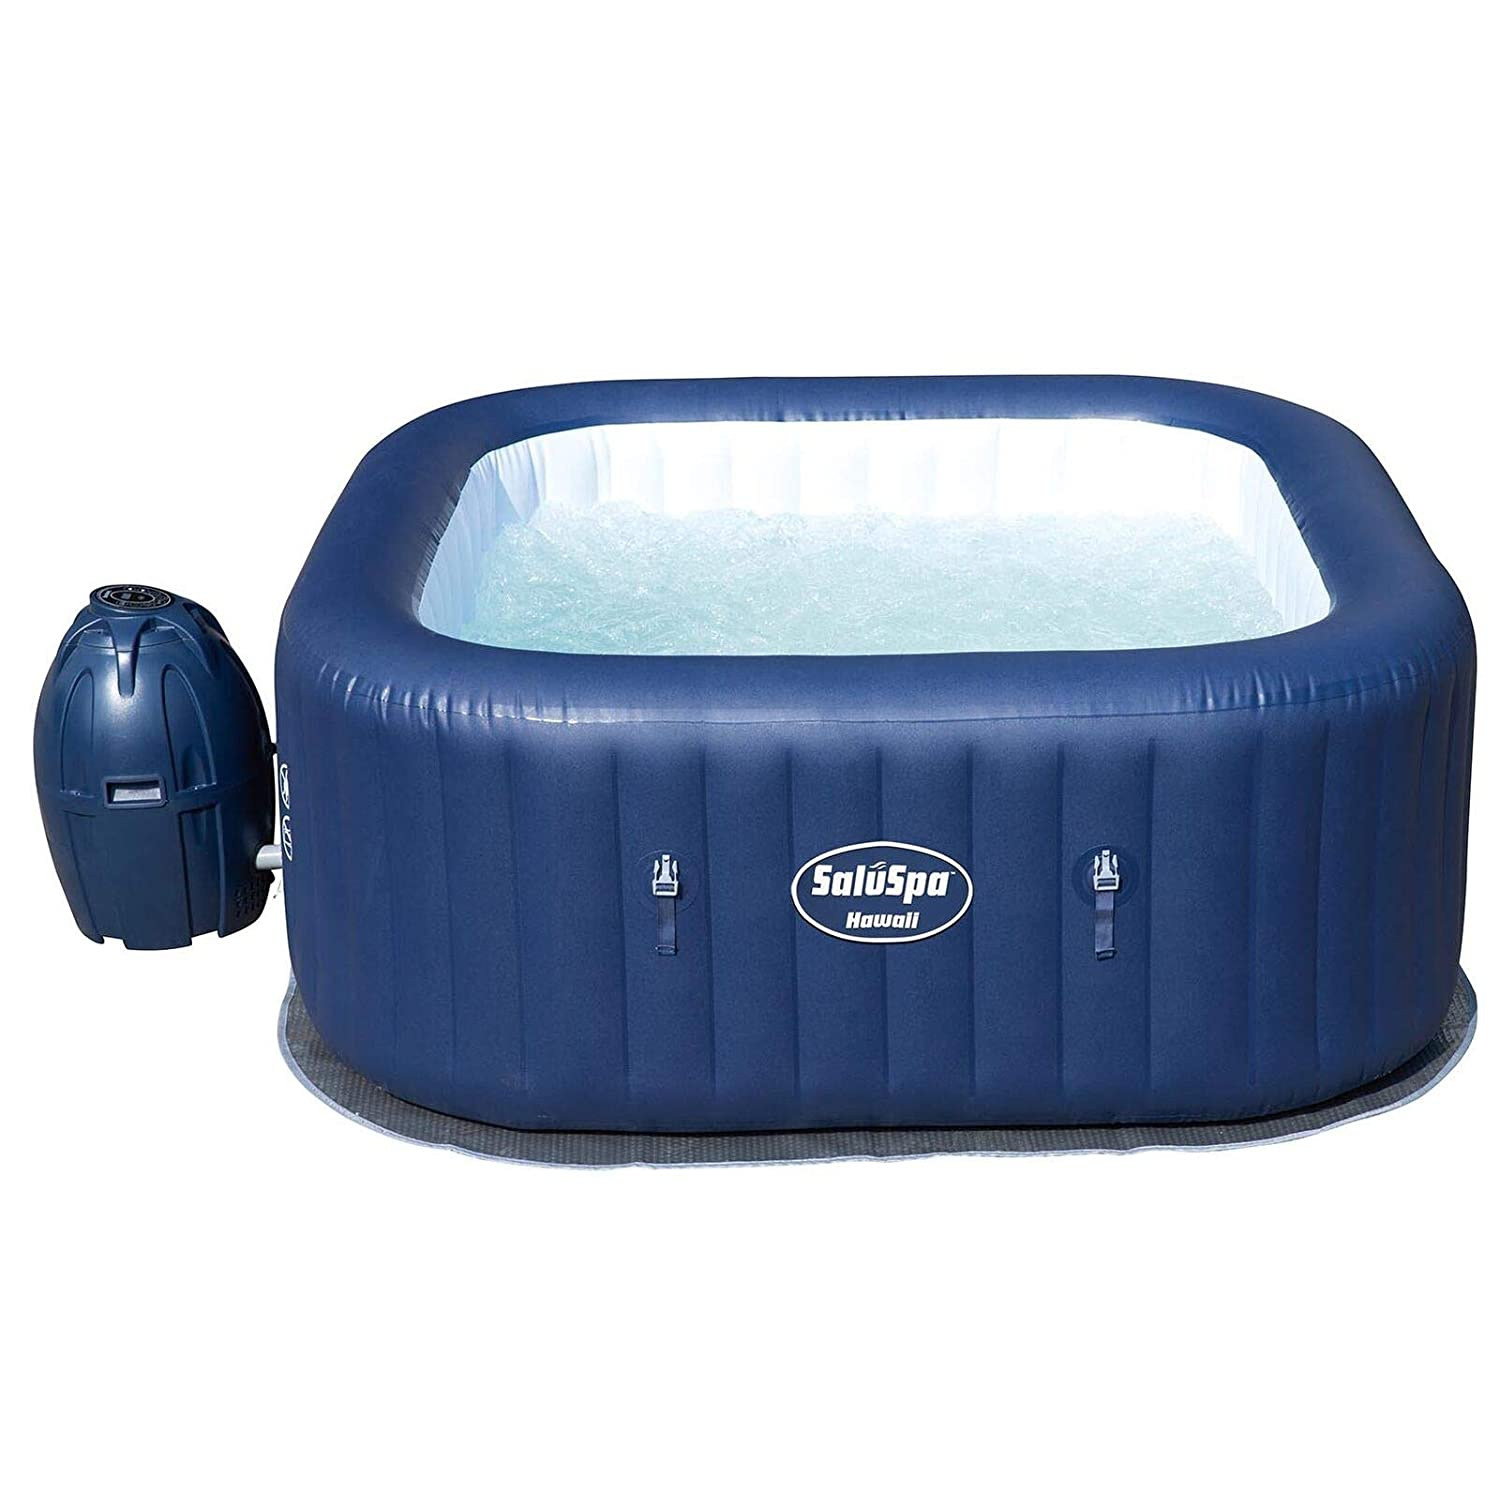 Amazon.com: SaluSpa Hawaii 6 Person Portable Inflatable Spa ...